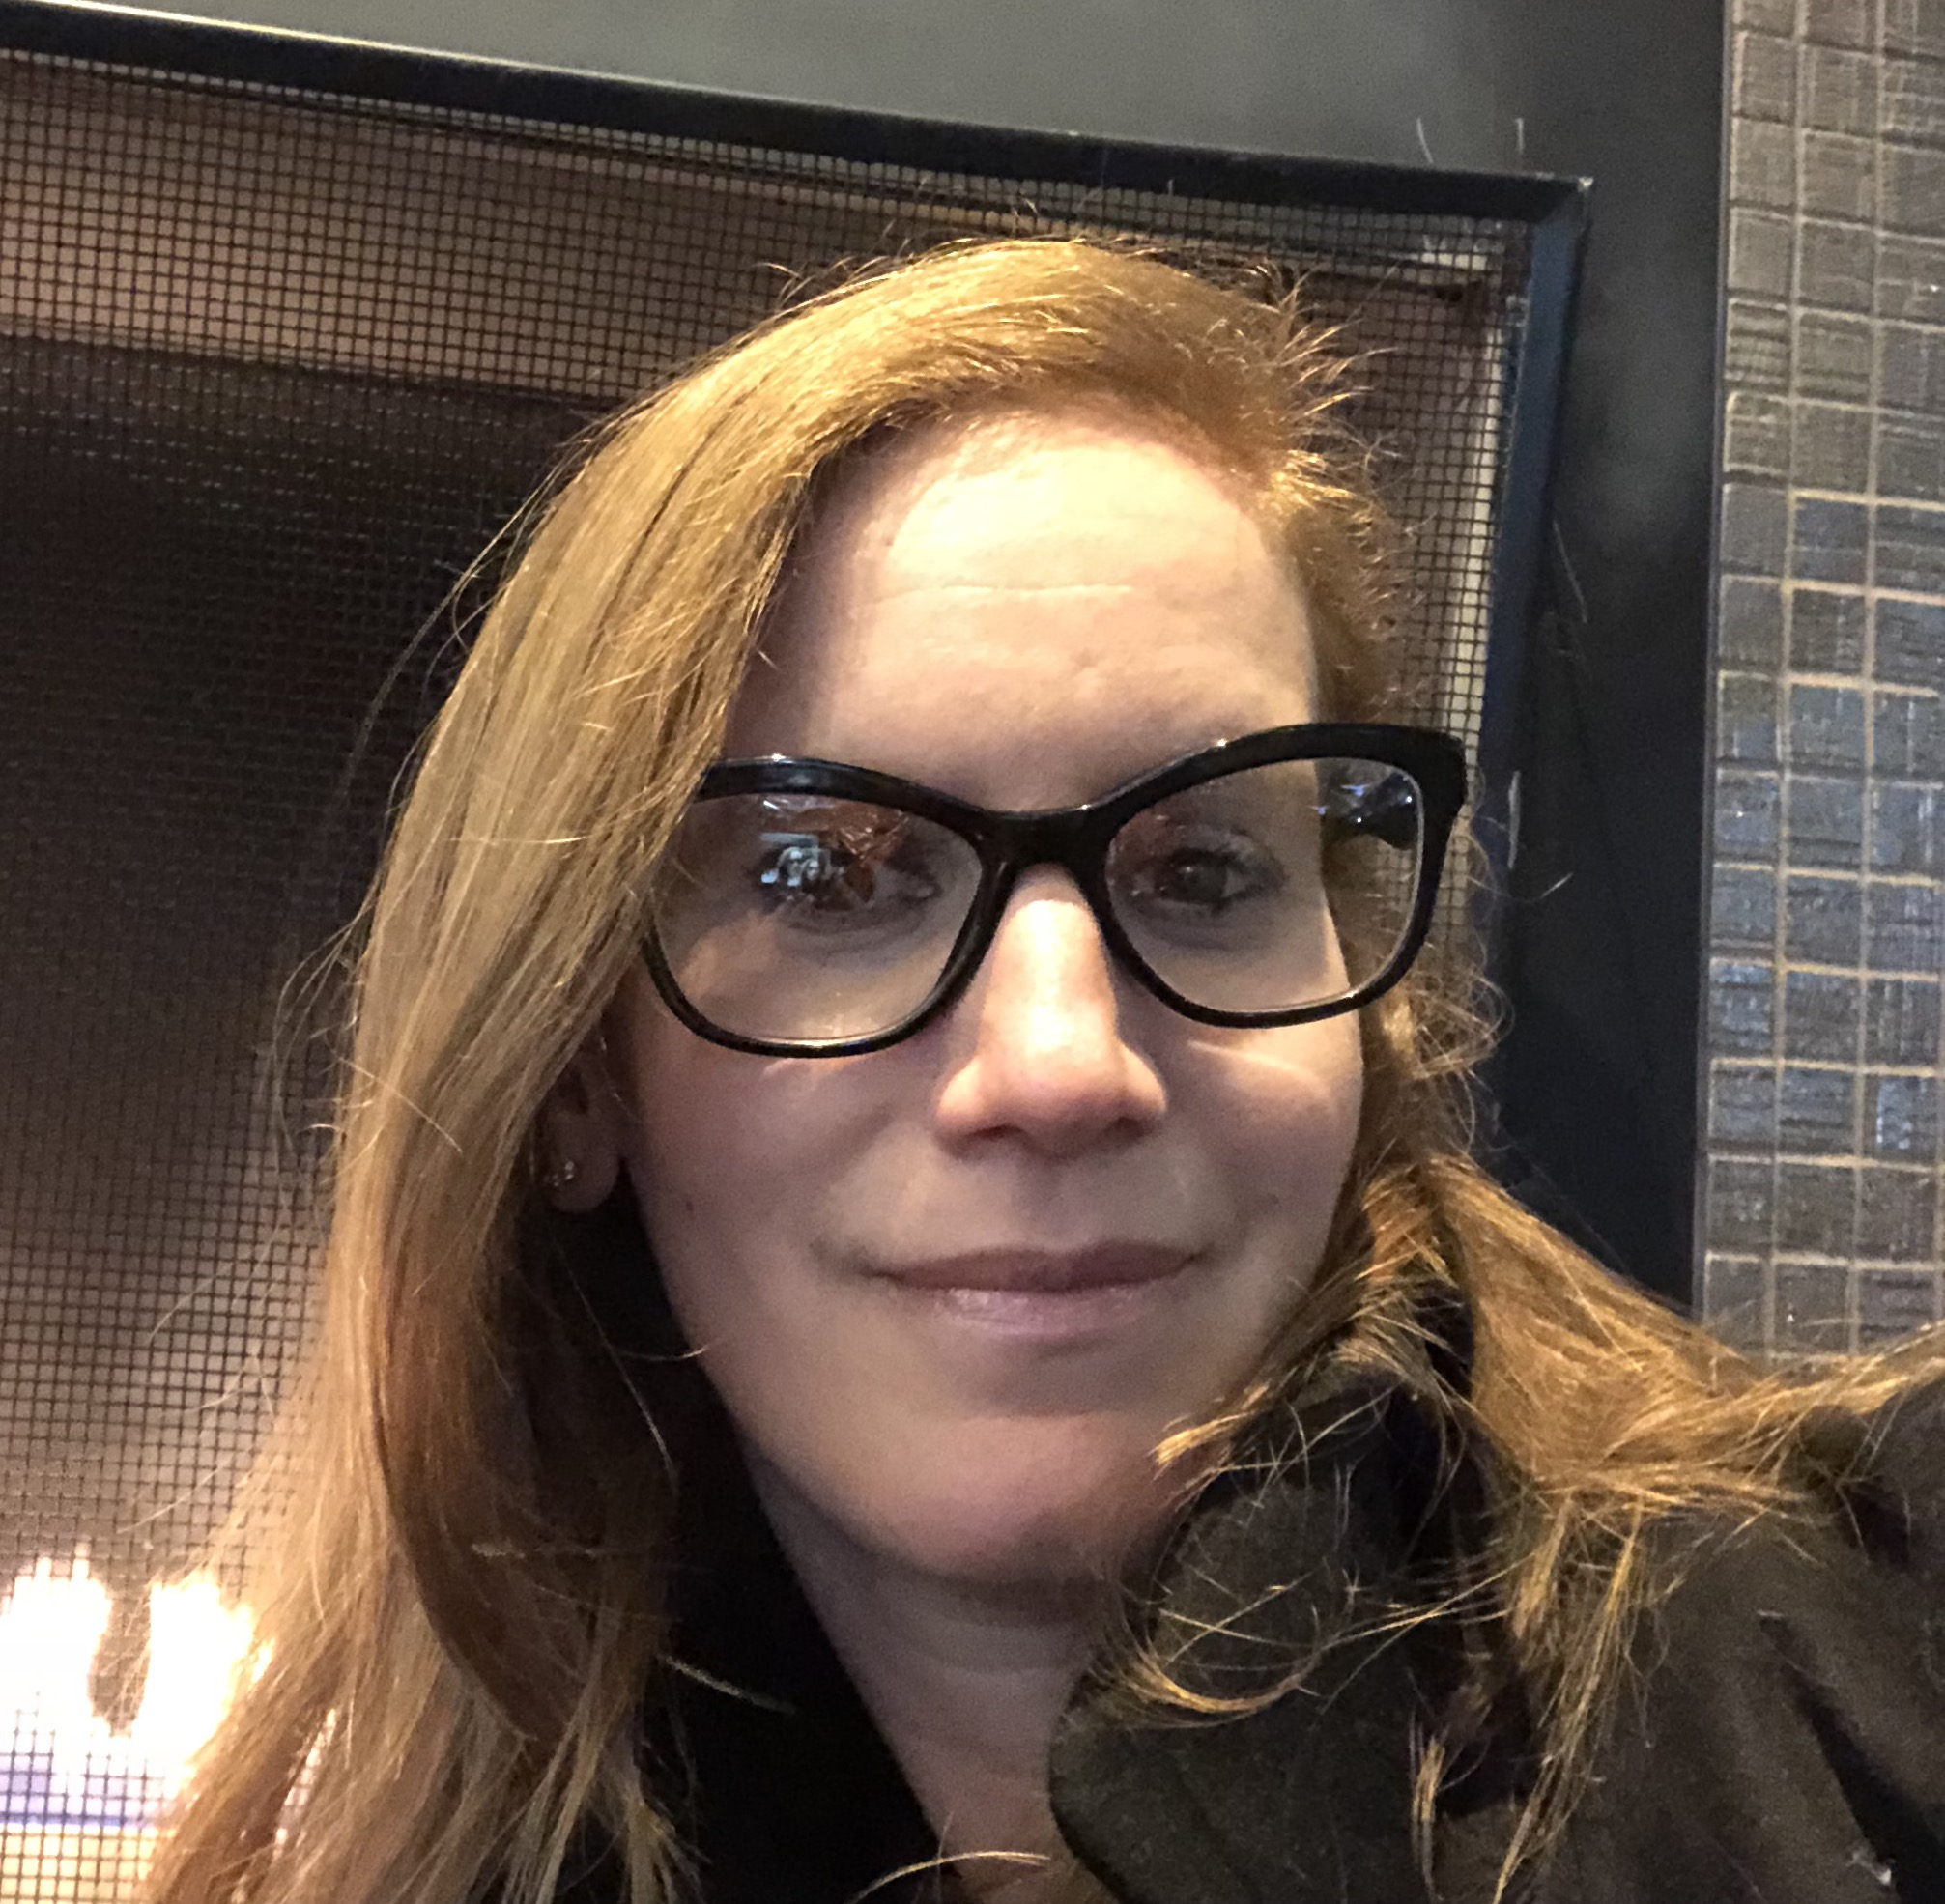 Cynthia snapped this selfie in the lobby of her Philly hotel right before we recorded this episode. Her glasses game is strong!